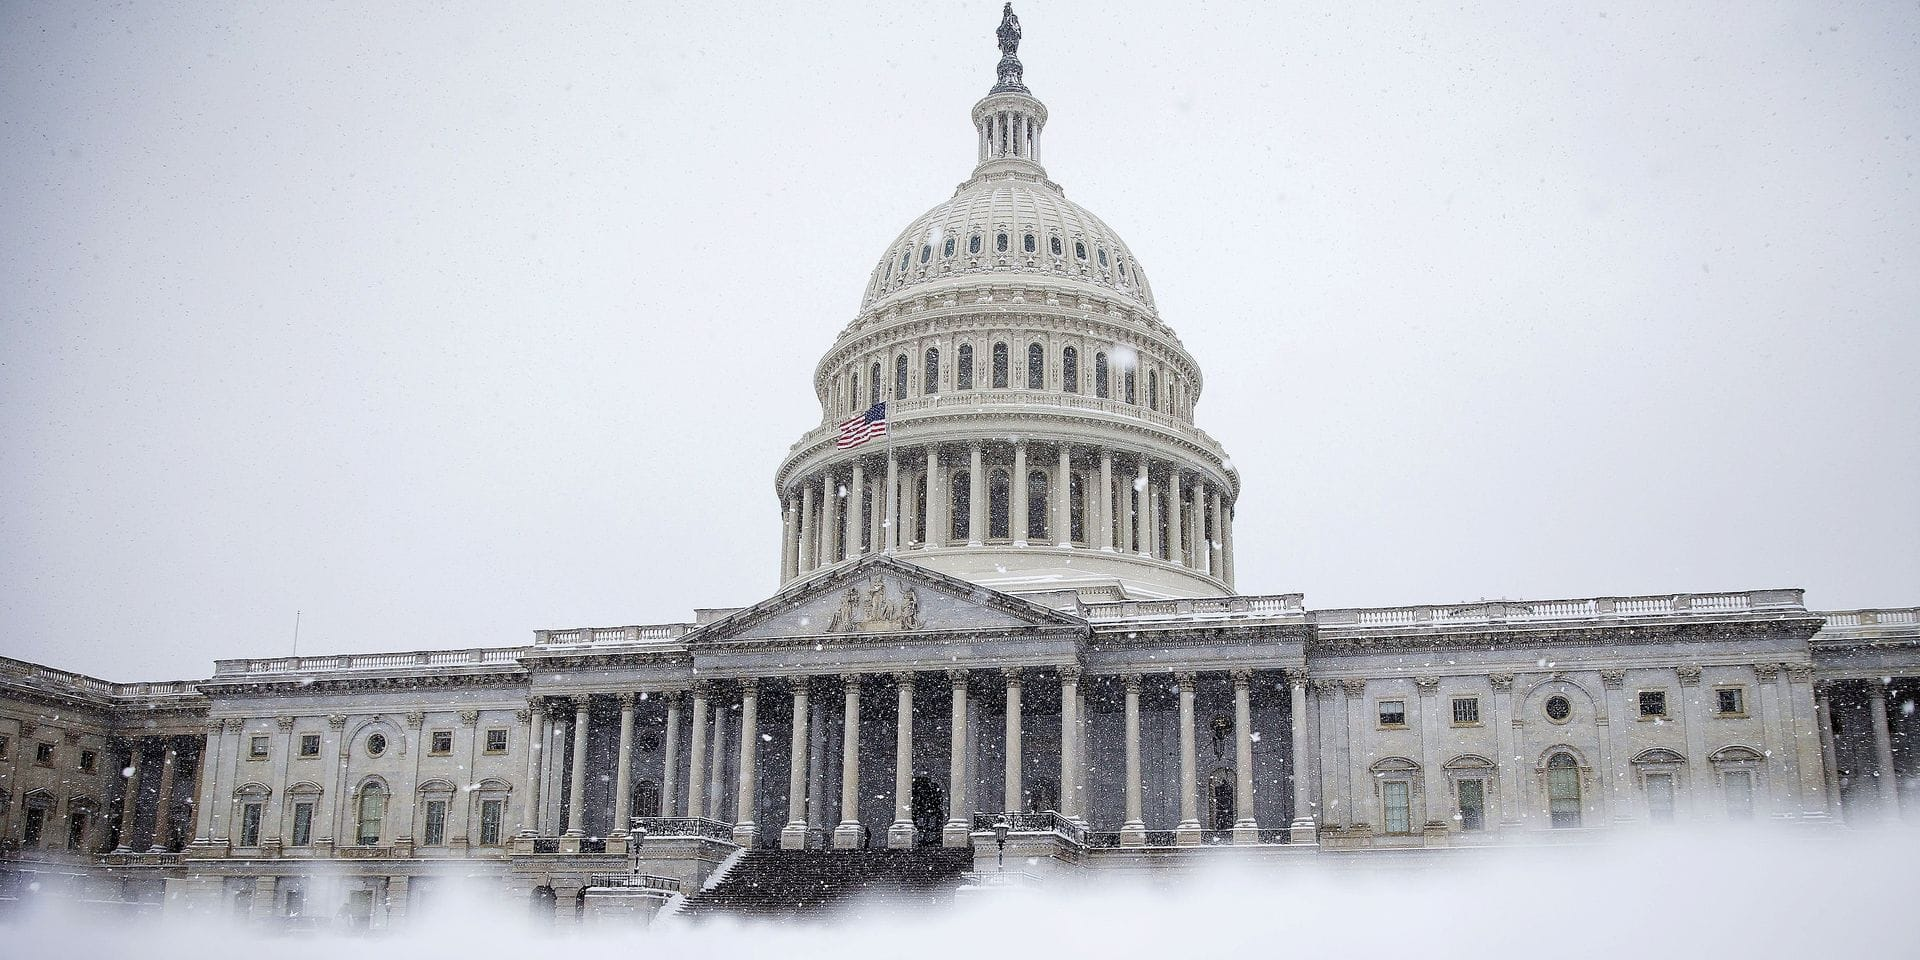 WASHINGTON, DC - JANUARY 13: Snow clovers the East Front of the U.S. Capitol, on January 13, 2019 in Washington, DC. The DC area was hit with 4-7 inches of snow accumulation with the potential of another 2-4 inches. President Donald Trump is holding off from a threatened national emergency declaration to fund a border wall amidst the longest partial government shutdown in the nation's history. Al Drago/Getty Images/AFP == FOR NEWSPAPERS, INTERNET, TELCOS & TELEVISION USE ONLY ==